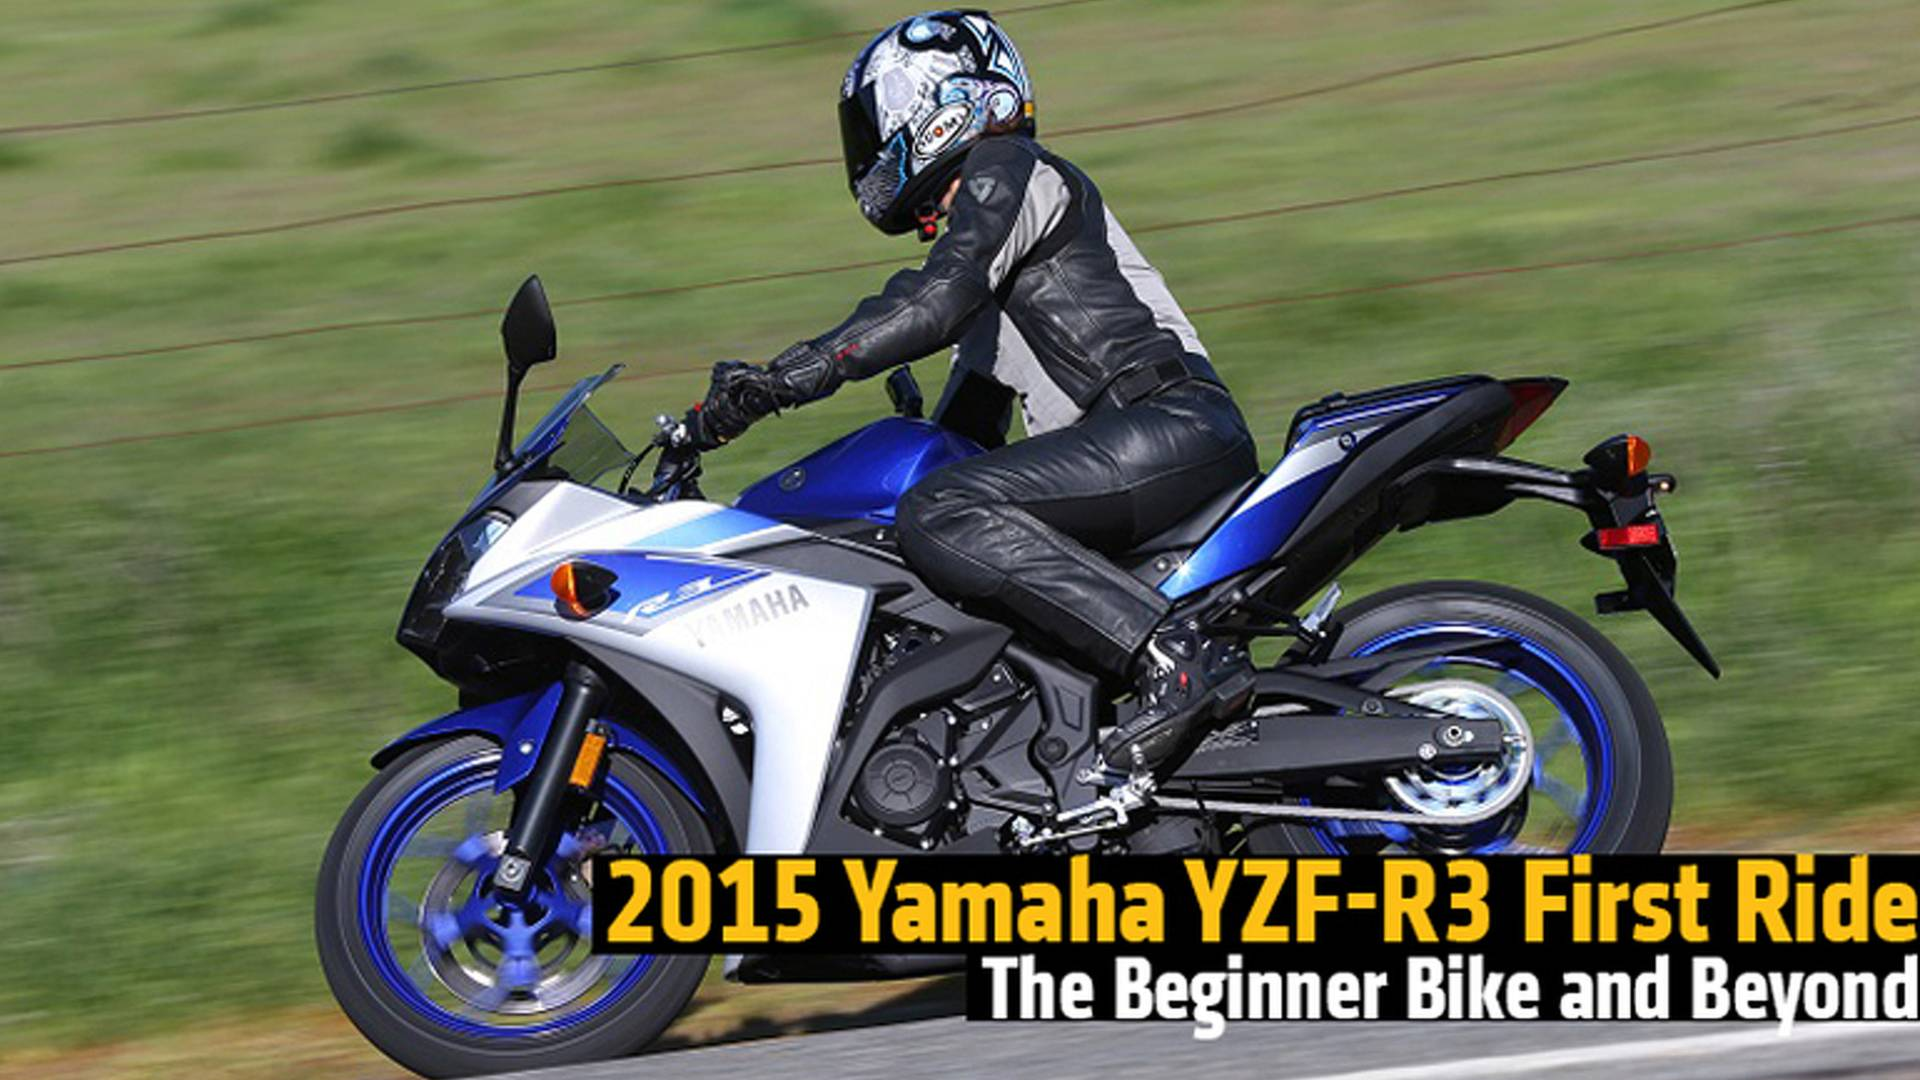 Marvelous 2015 Yamaha Yzf R3 First Ride The Beginner Bike And Beyond Lamtechconsult Wood Chair Design Ideas Lamtechconsultcom